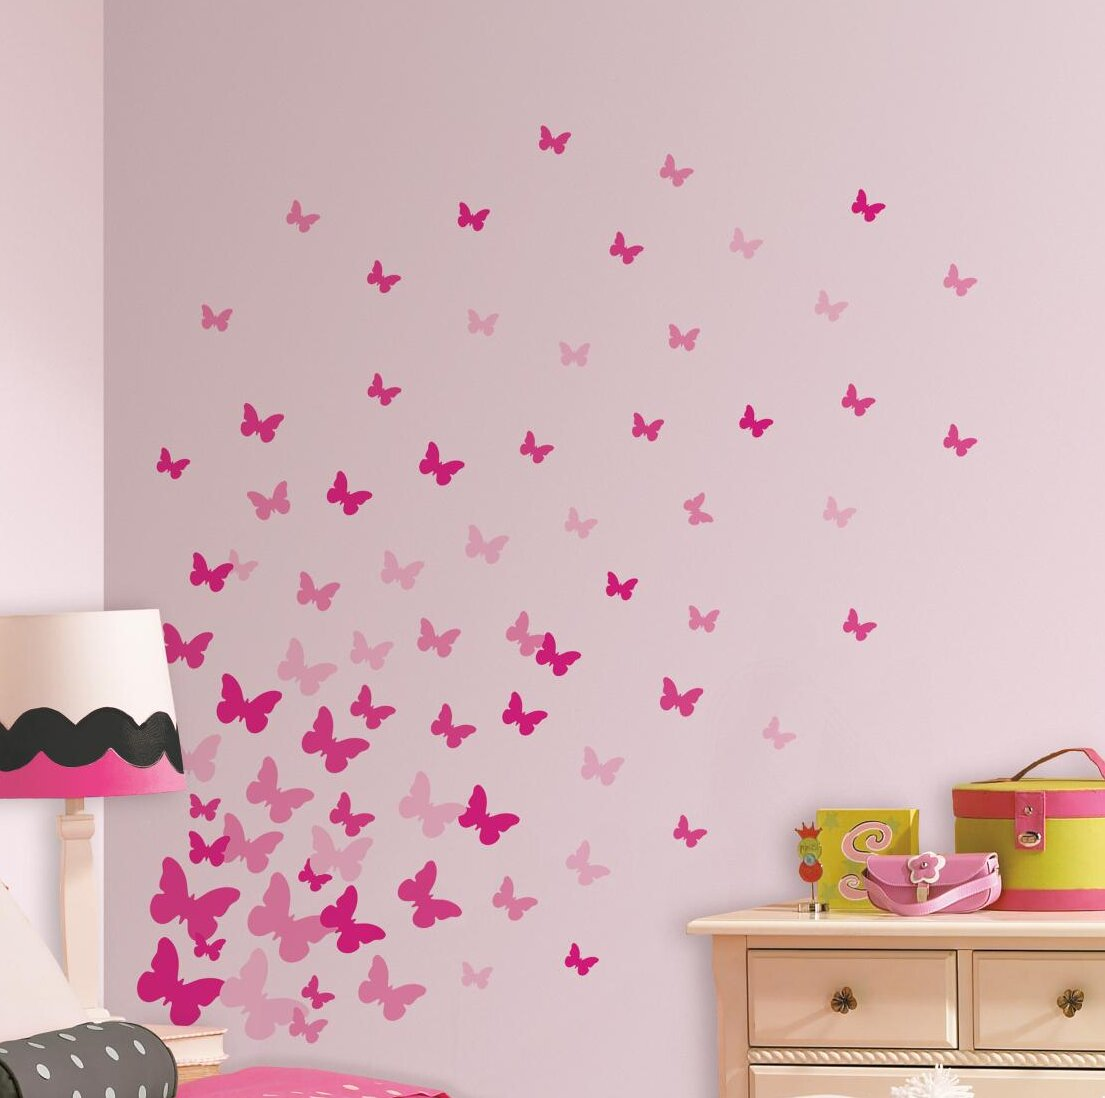 Removable Border Removable Wall Stickers Pattern Decals Living Room Waterproof